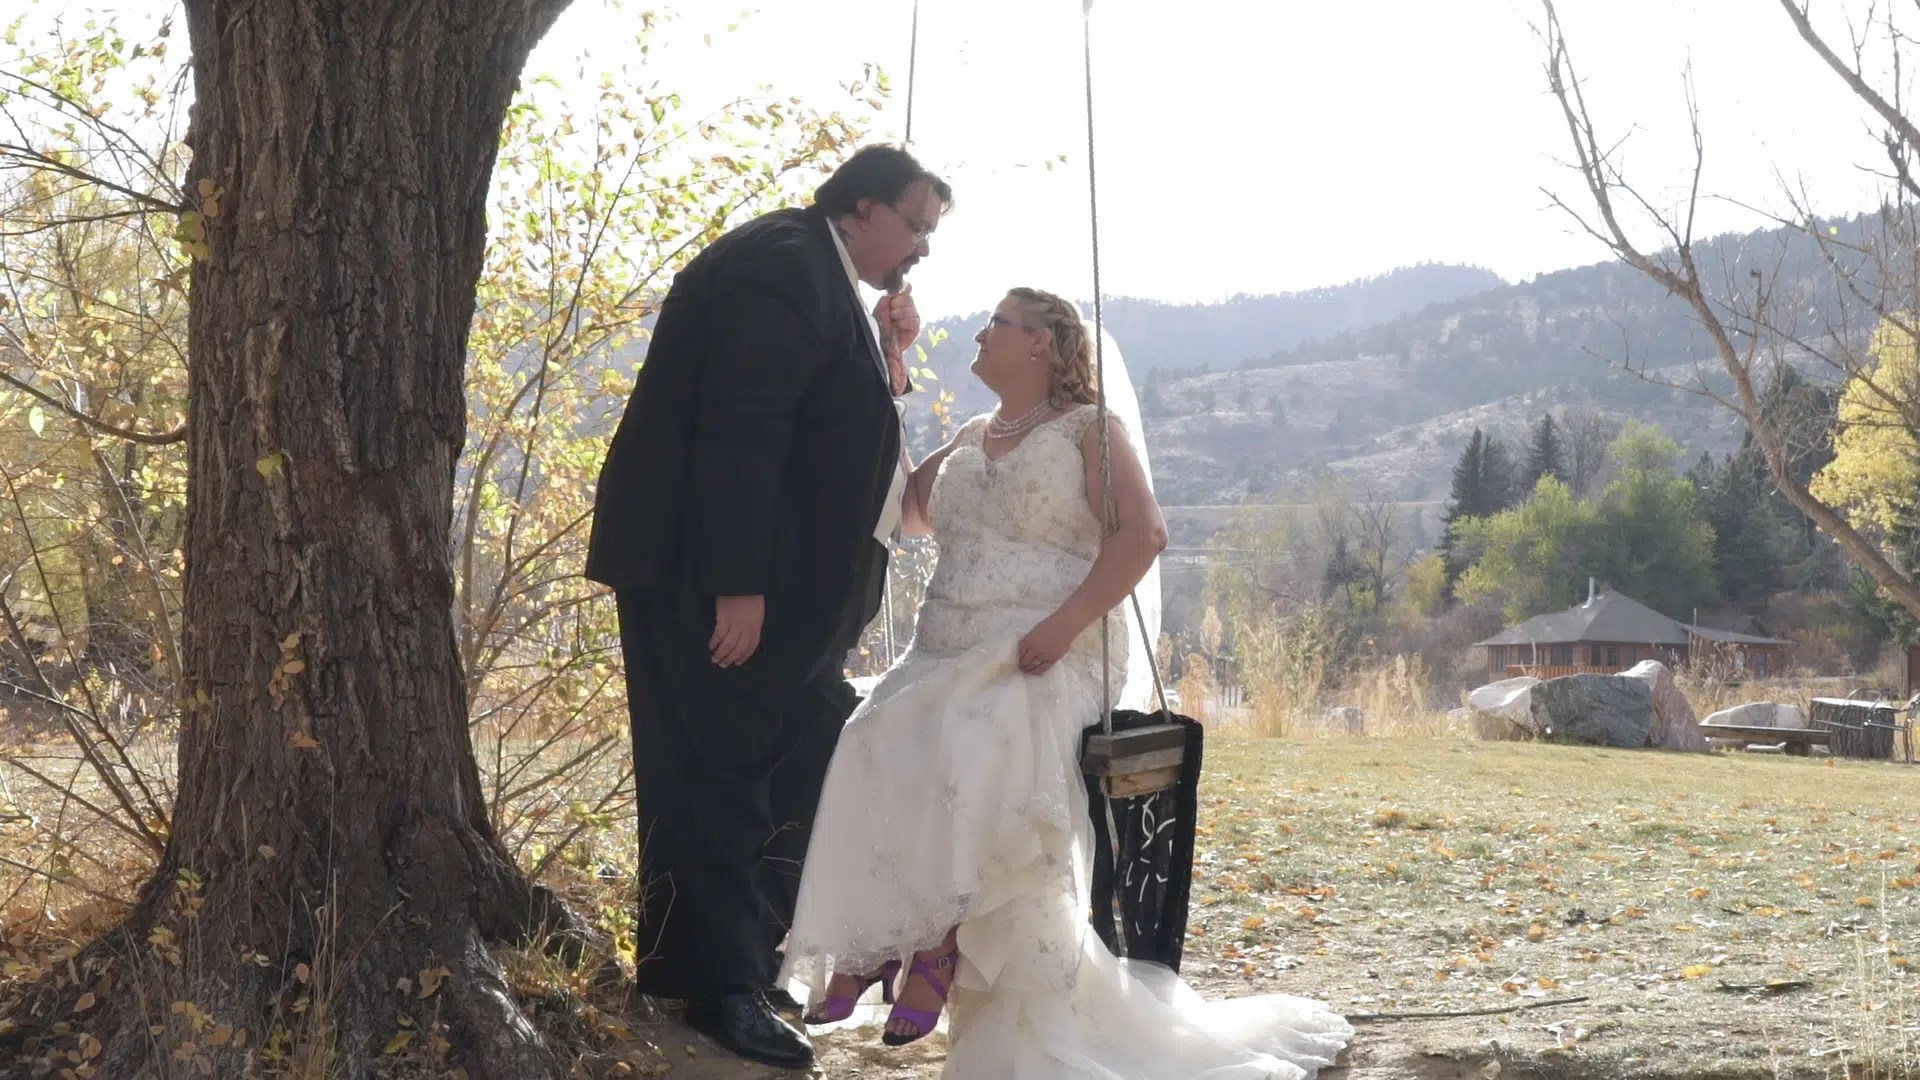 Math & Lora at Sylvan Dale Ranch | Loveland, CO